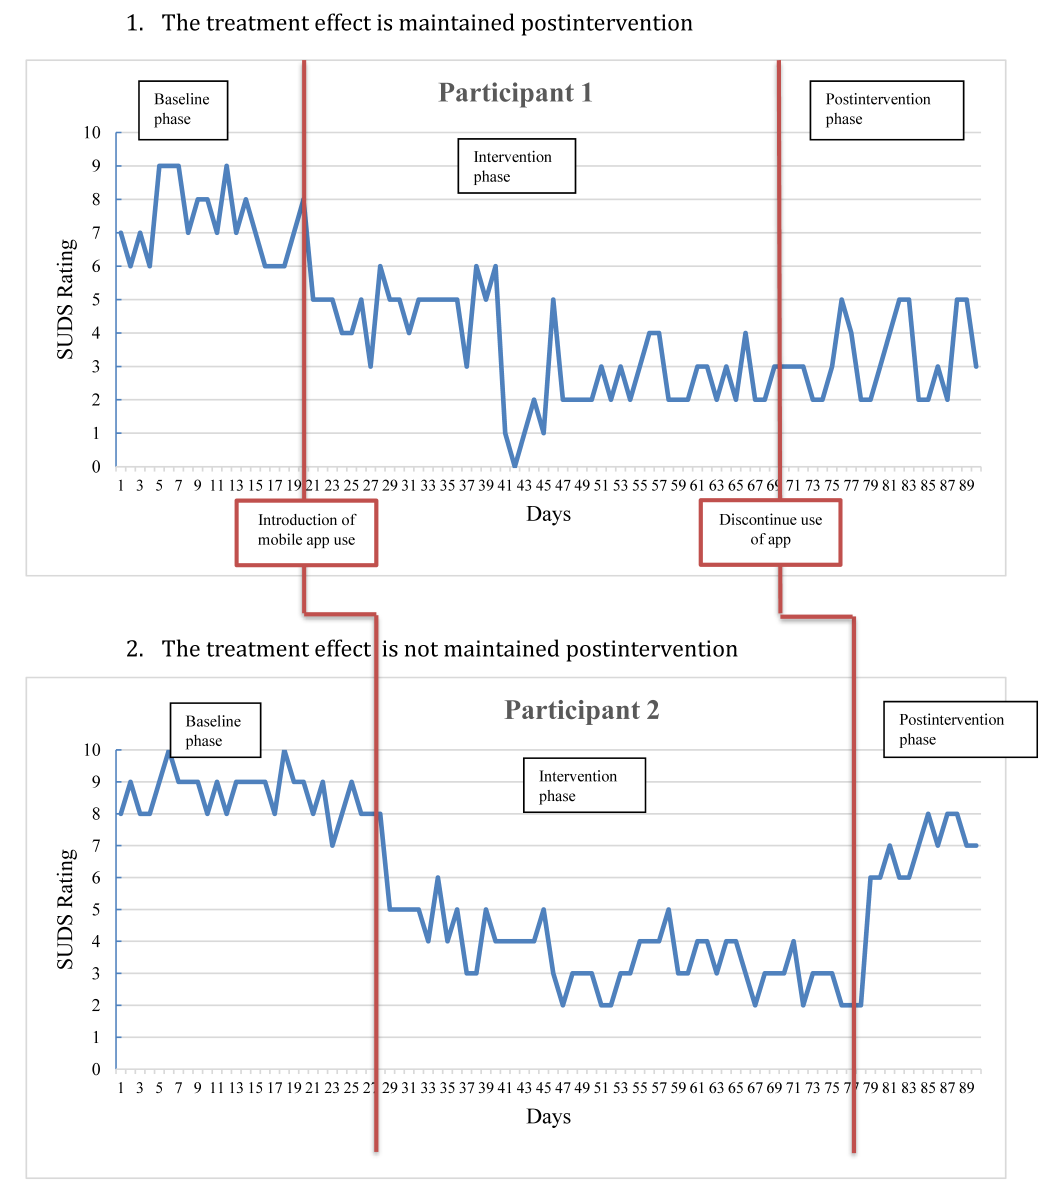 Jrp Effectiveness Of Using Mental Health Mobile Apps As Digital Antidepressants For Reducing Anxiety And Depression Protocol For A Multiple Baseline Across Individuals Design Marshall Jmir Research Protocols